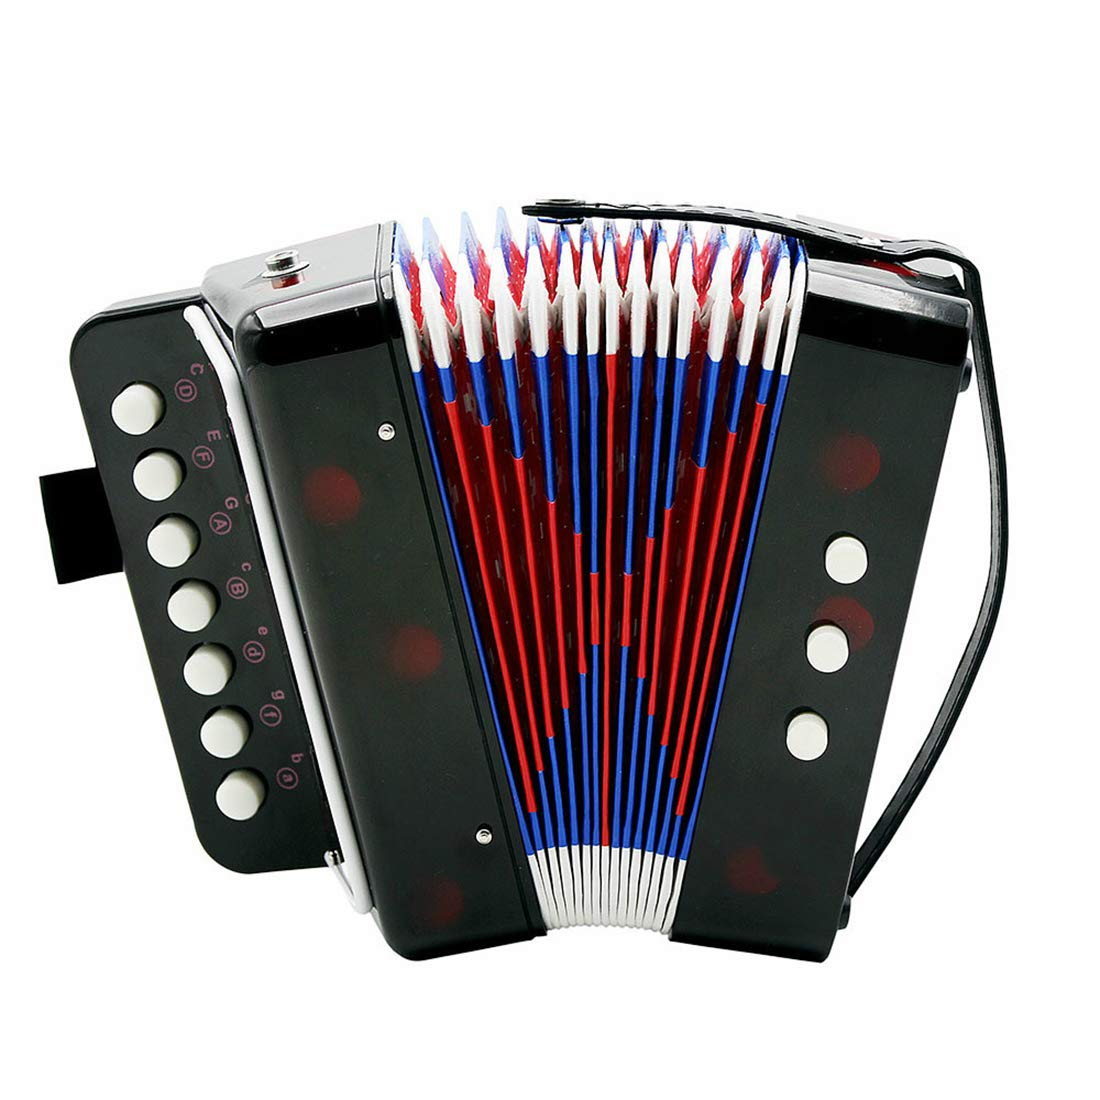 SFQNPA Childrens Kids Accordion Keyboard Instruments with 7 Treble Keys 3 Air Valves Hand Strap Early Learning Eduction Instrument Music Toy Black